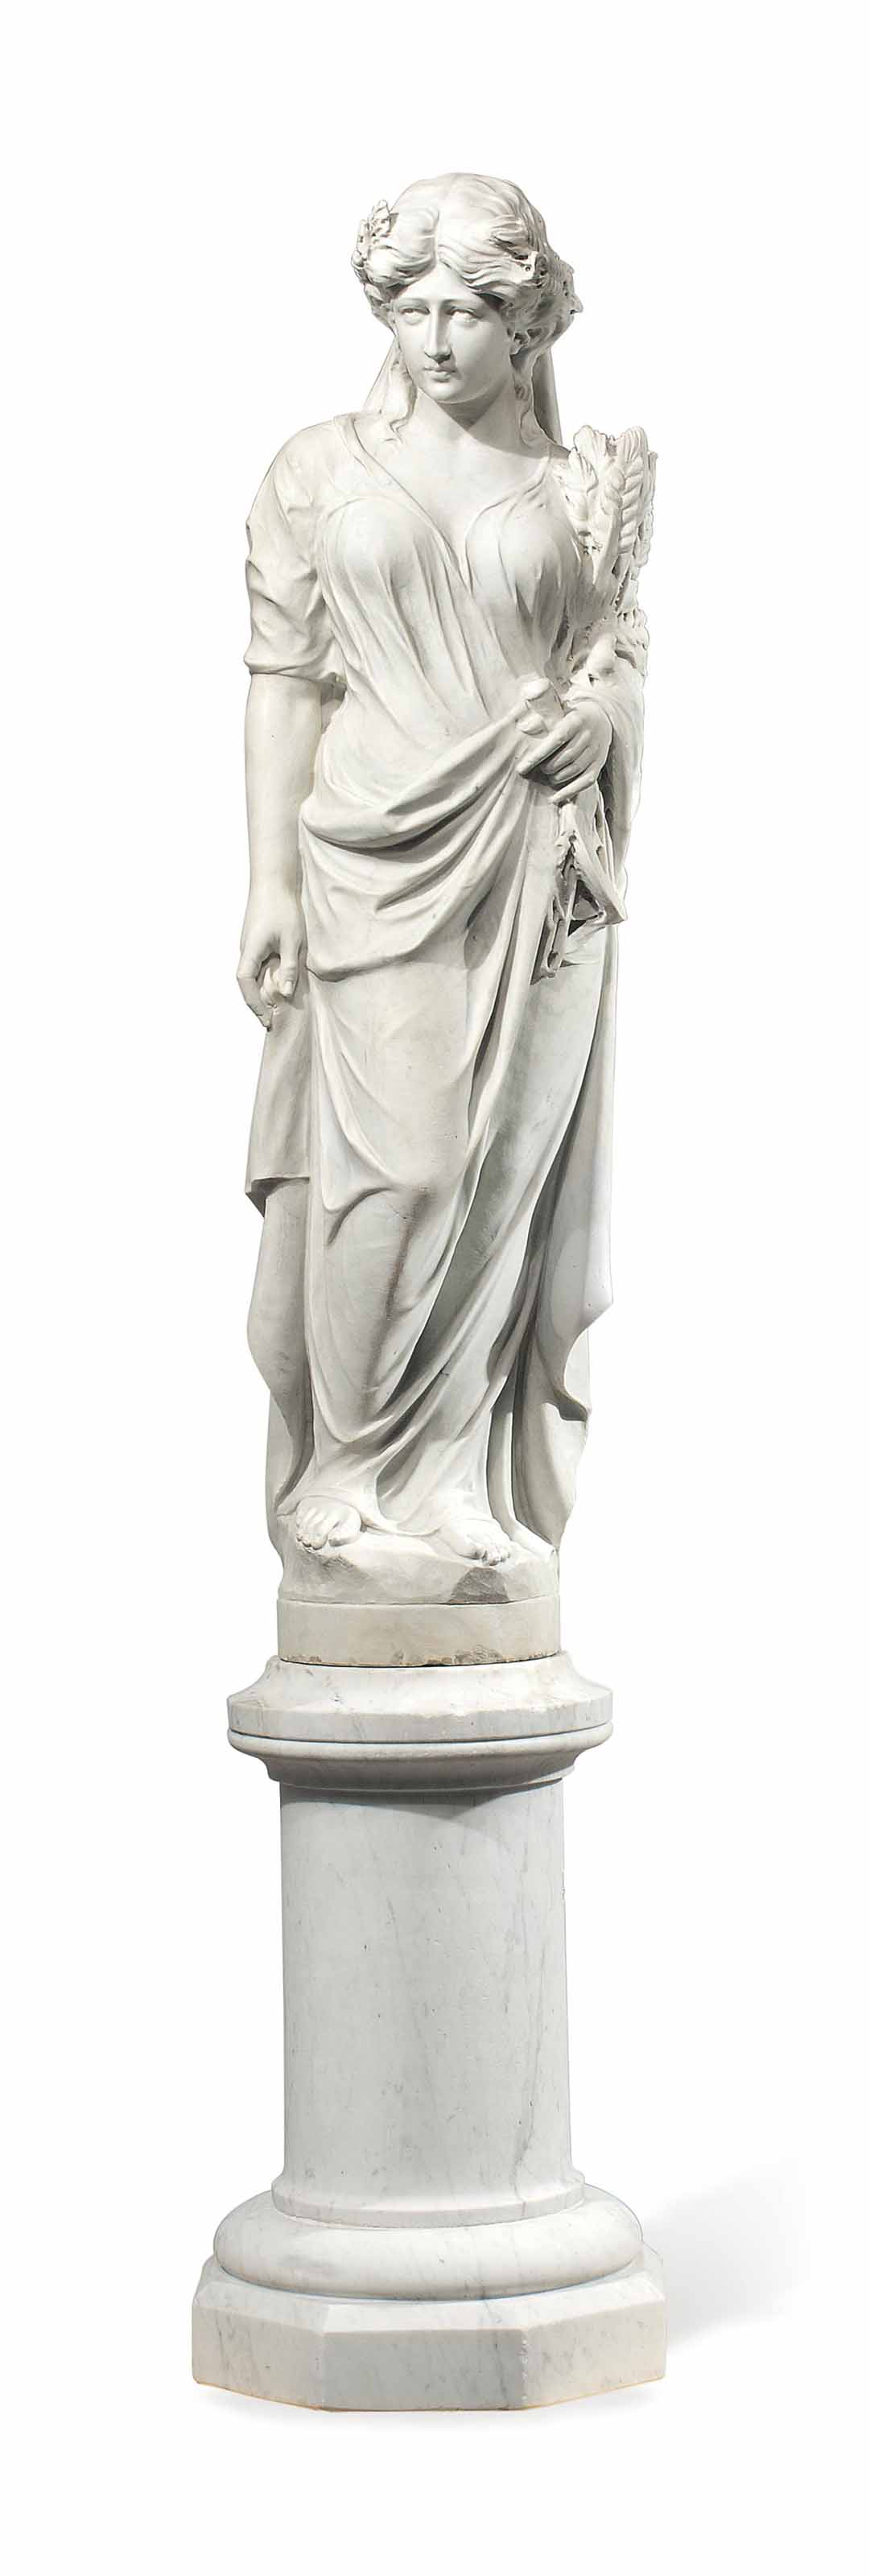 A CARVED MARBLE FIGURE OF A MA